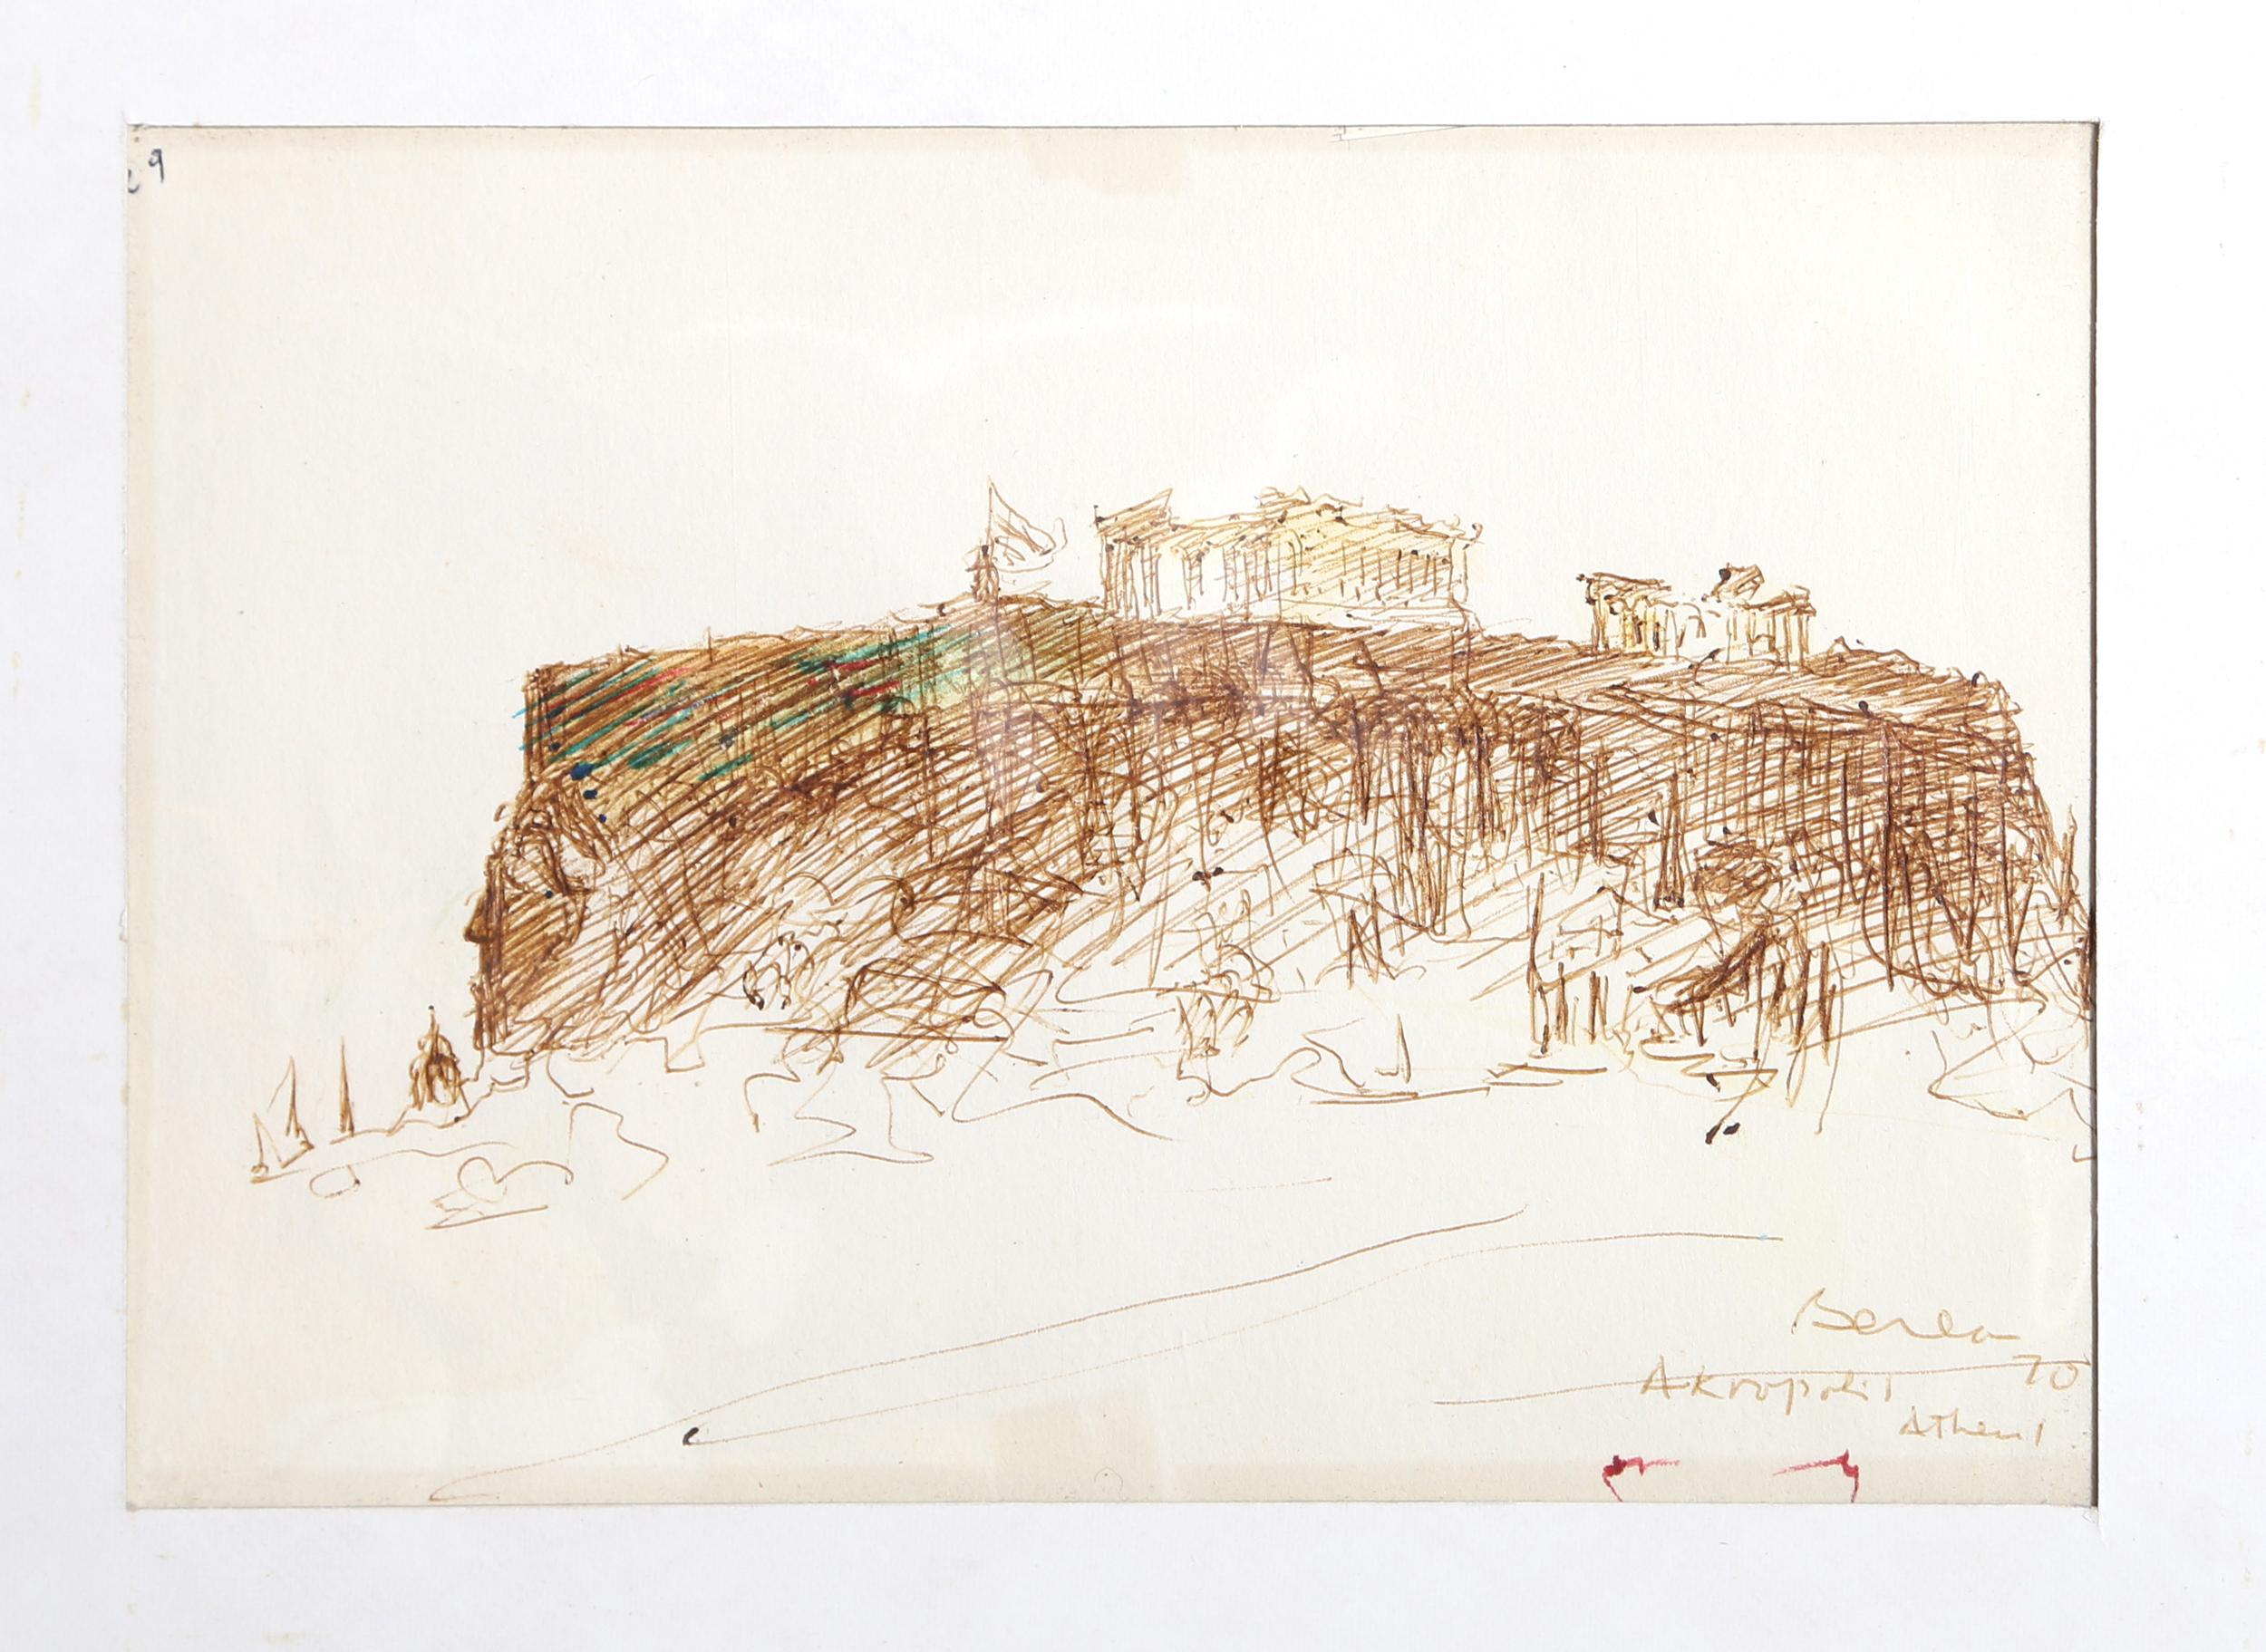 Dimitrie Berea, Acropolis, Athens (36), Ink Drawing